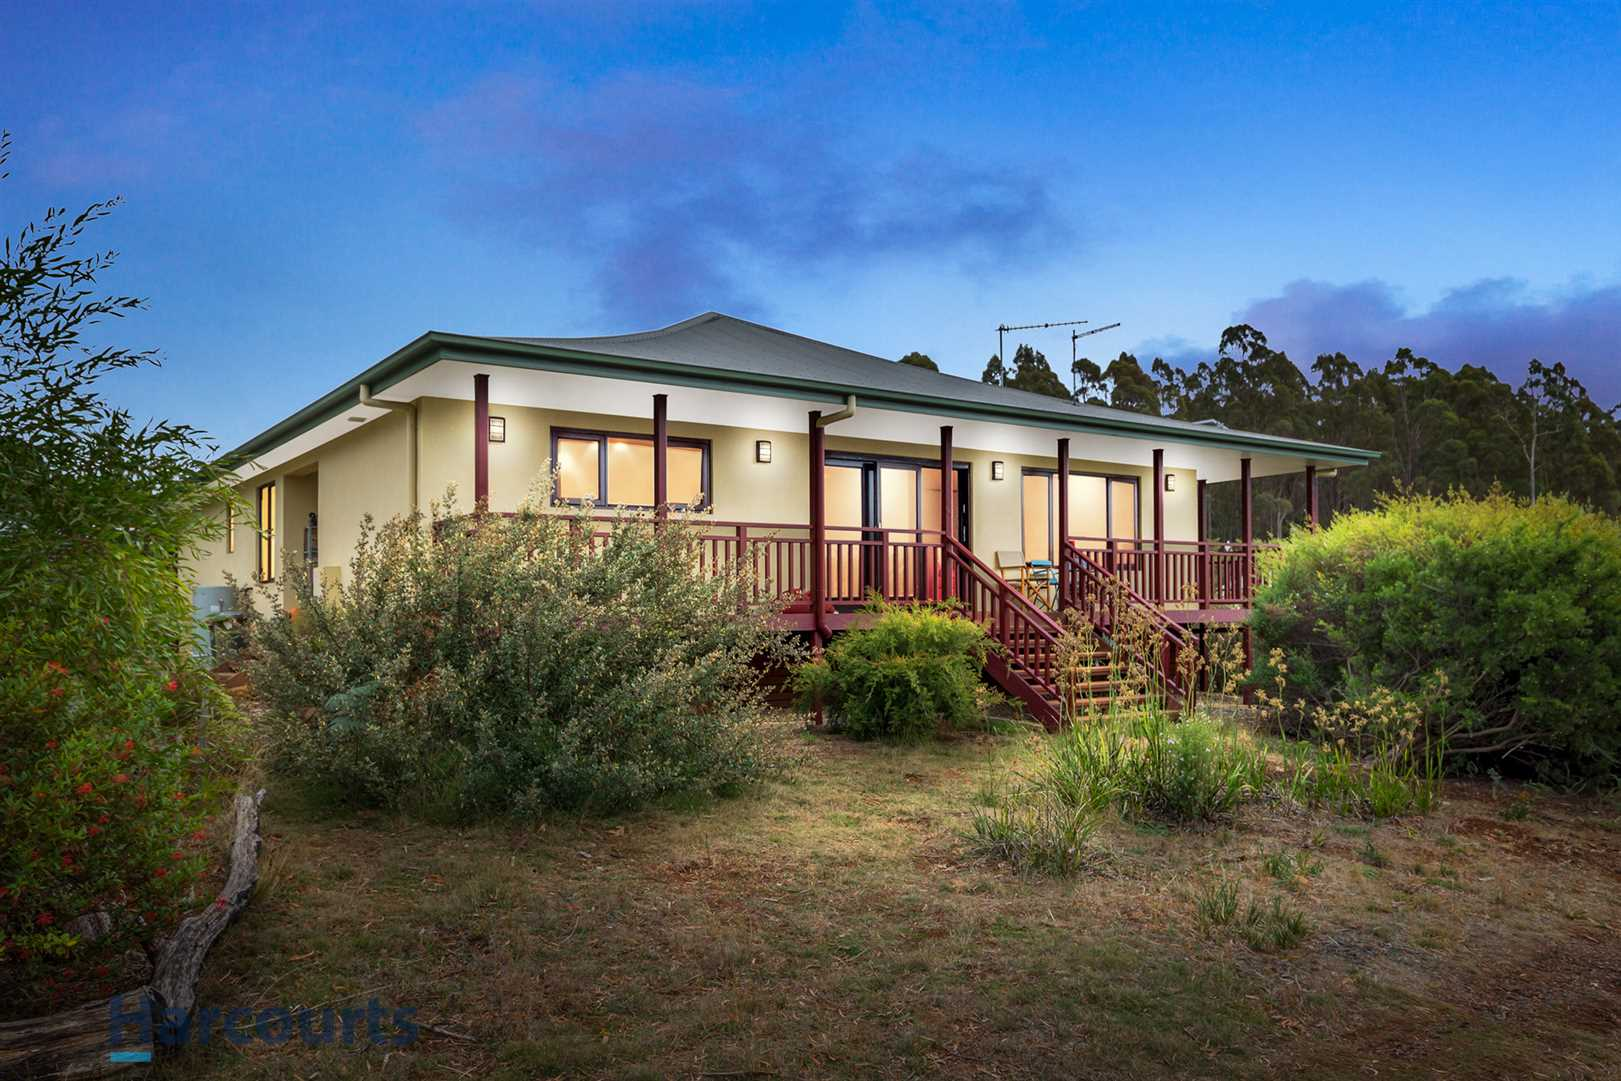 Modern Home & Separate Unit on Approx. 53 Ac. of Serenity